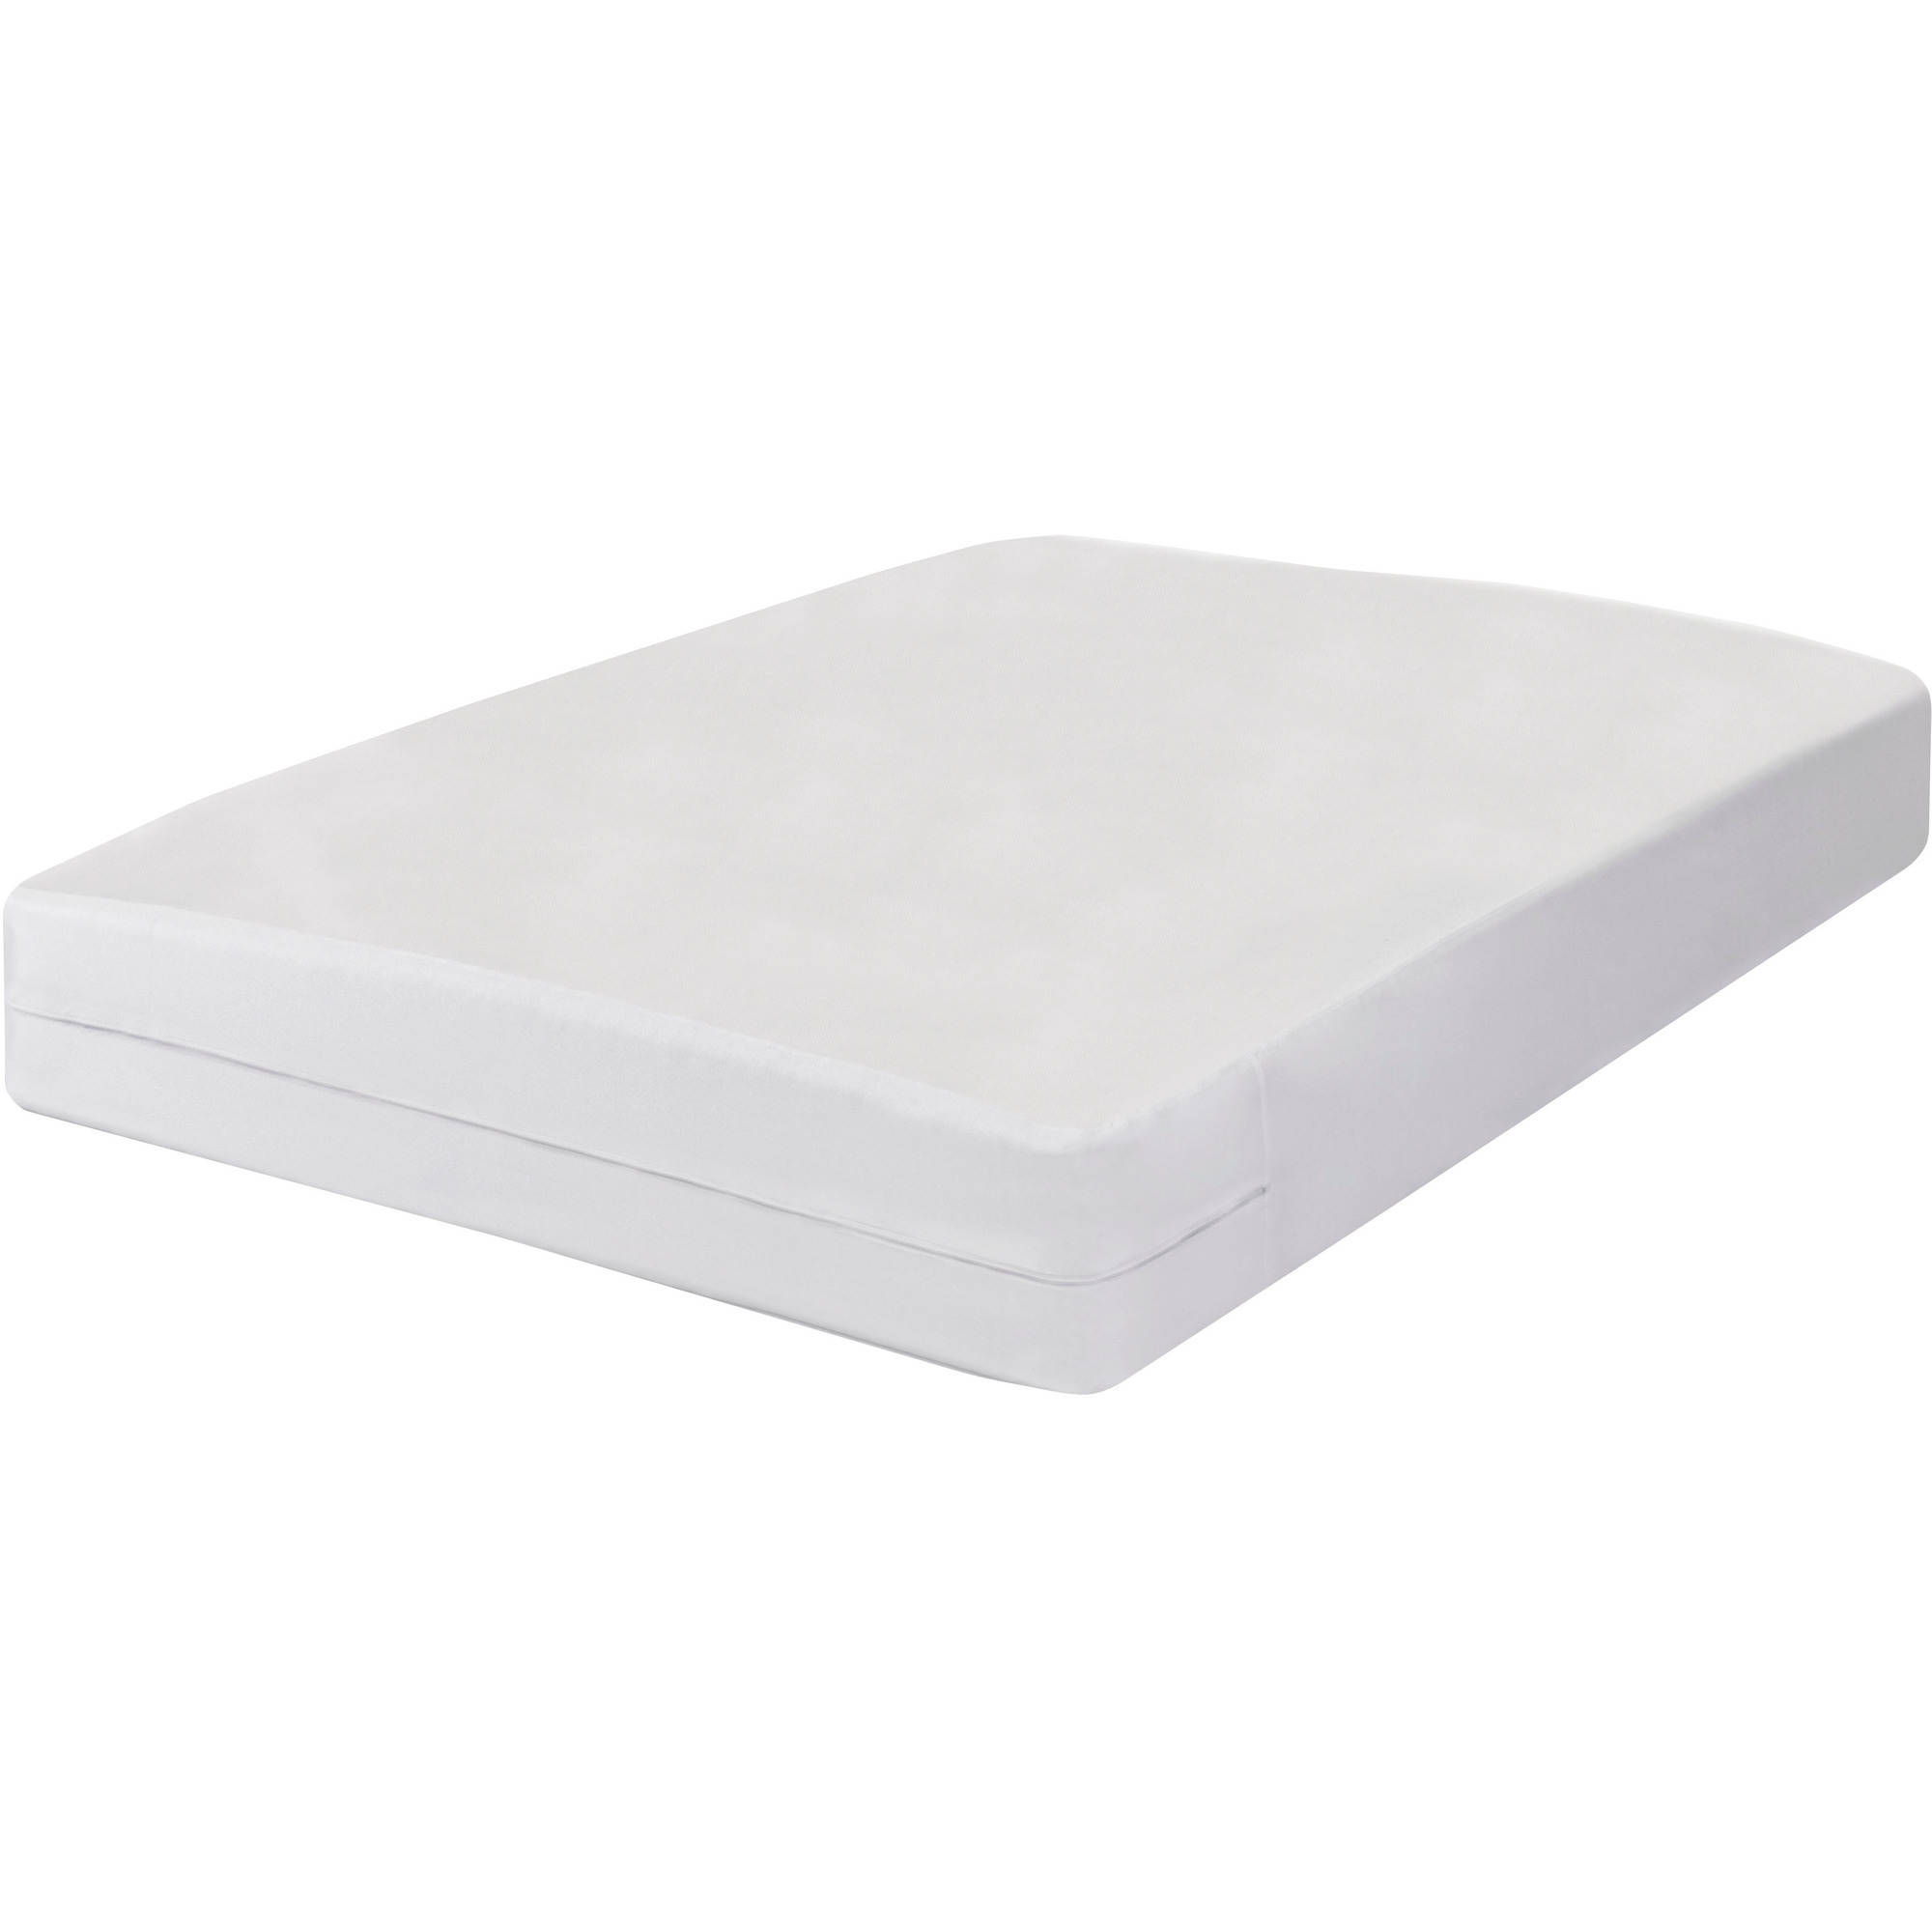 original bed bug blocker zippered mattress protector - walmart